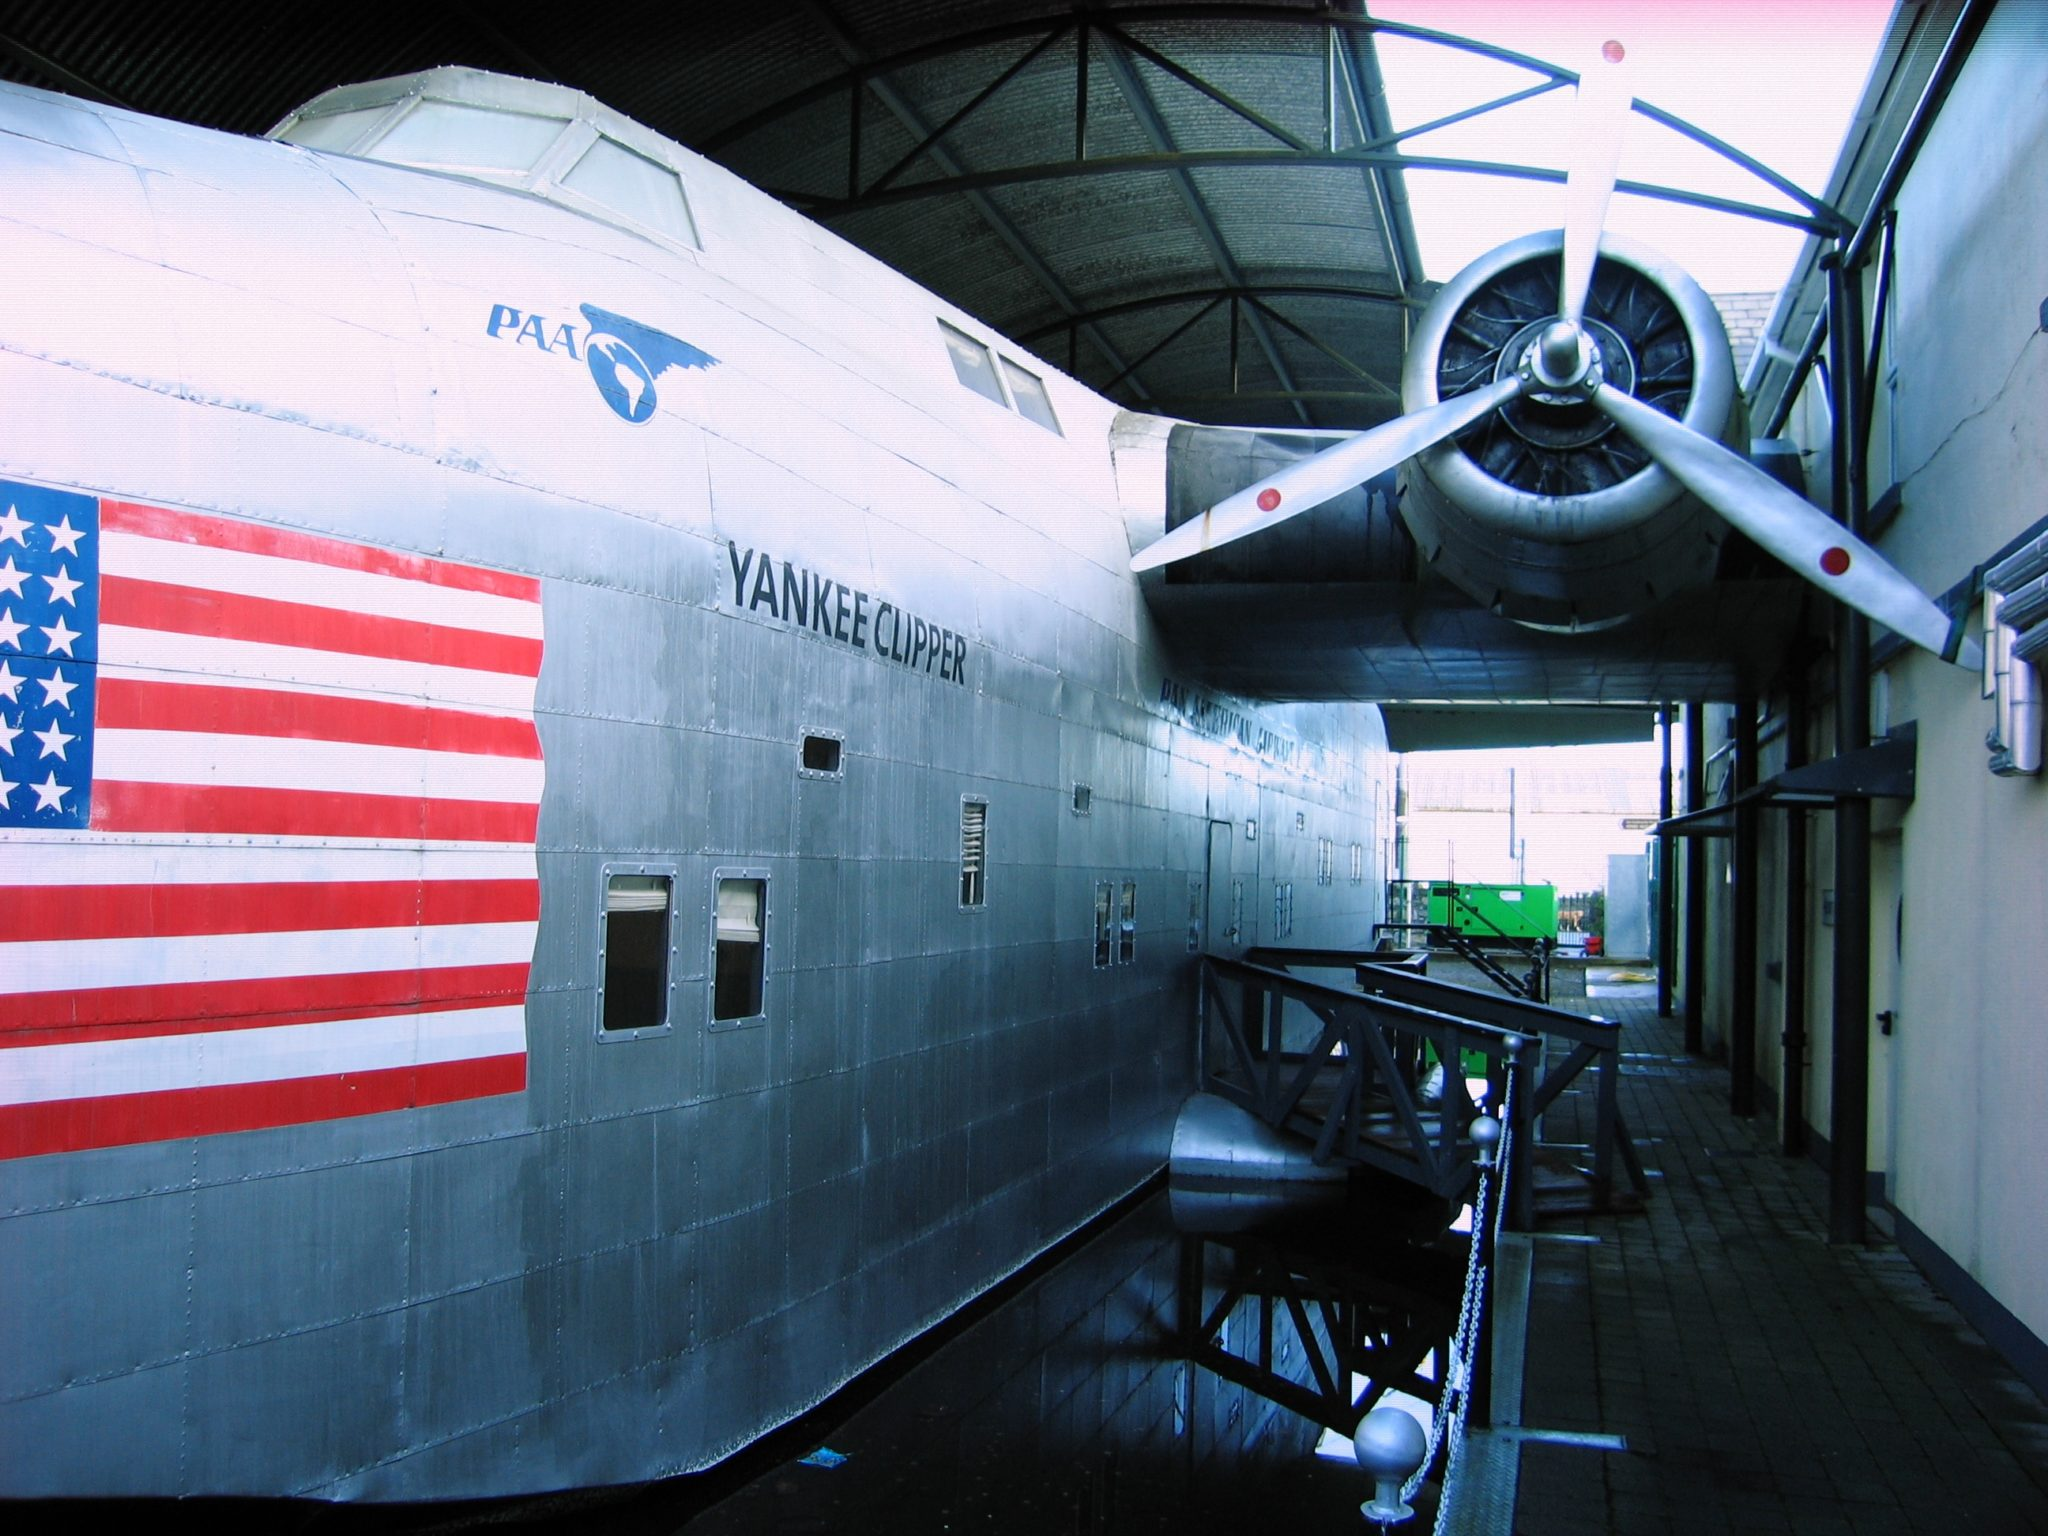 B314 Yankee Clipper_2